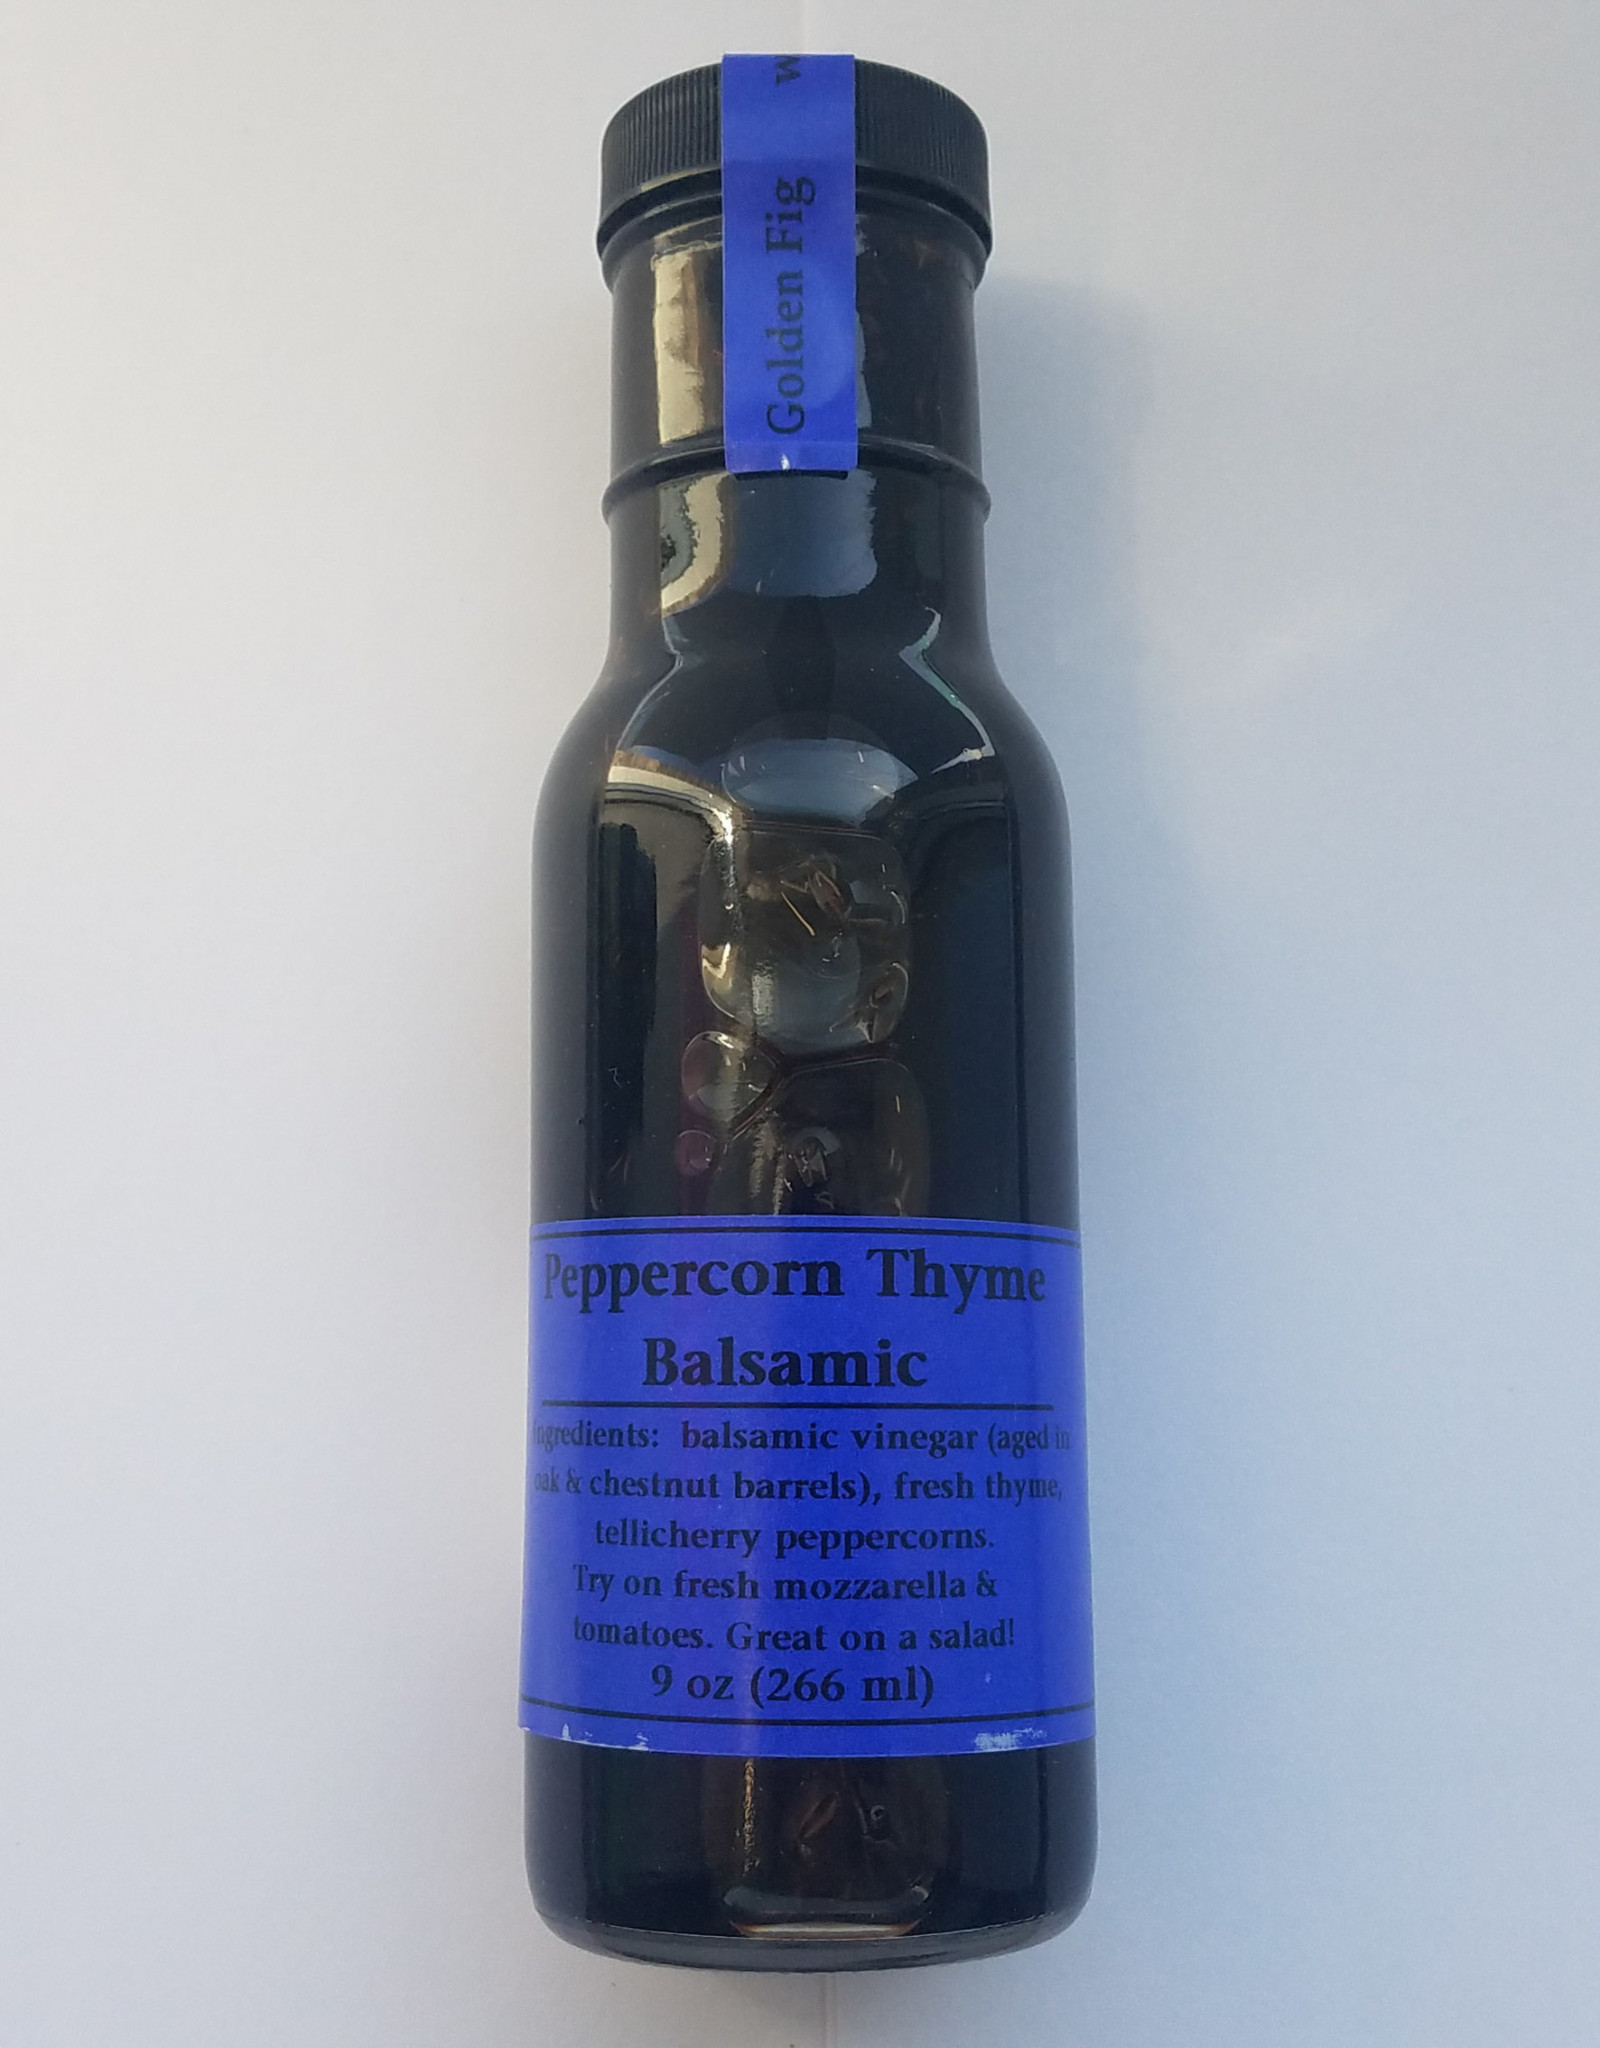 Golden Fig Peppercorn Thyme Balsamic Vinegar